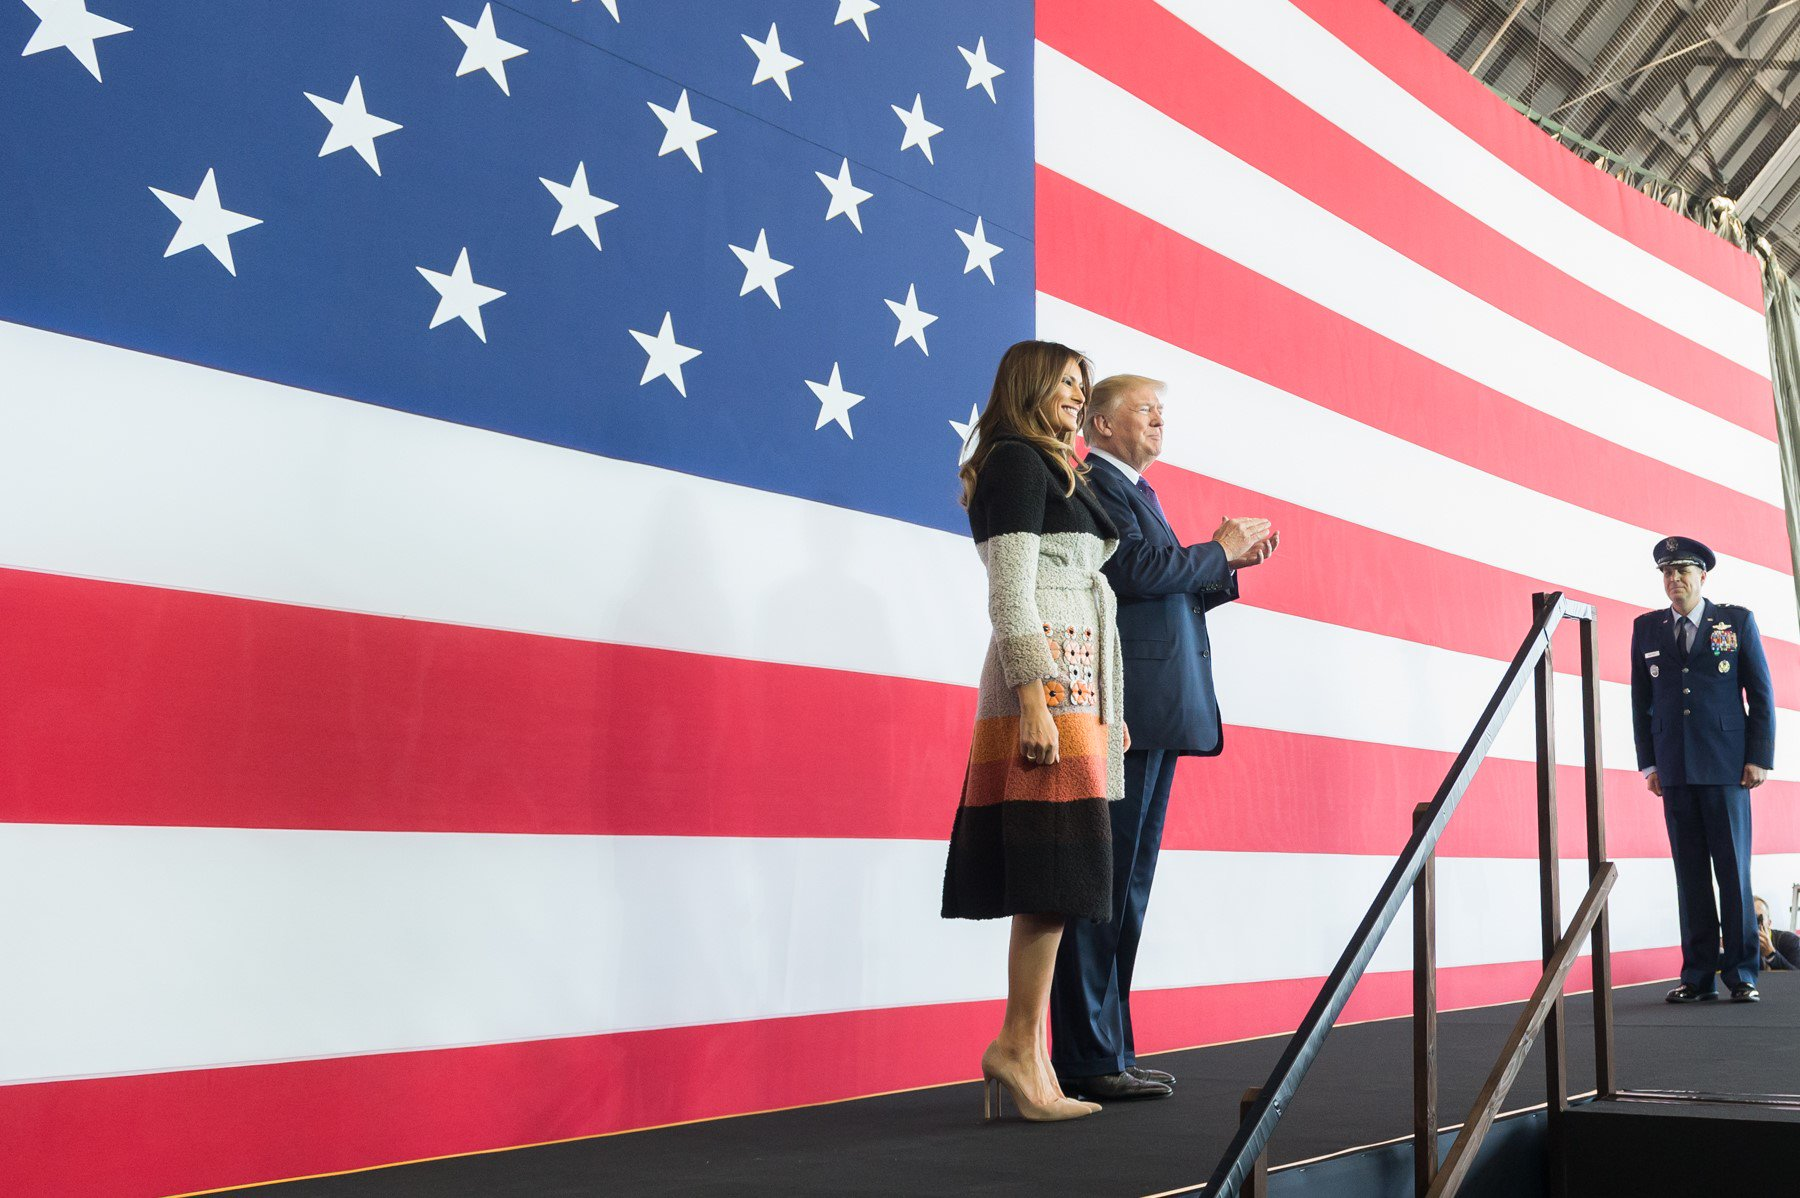 Follow President Trump and the First Lady's trip to Asia in photos: https://t.co/2EdlNGZPYw #POTUSinAsia https://t.co/50GwMvU2Qf